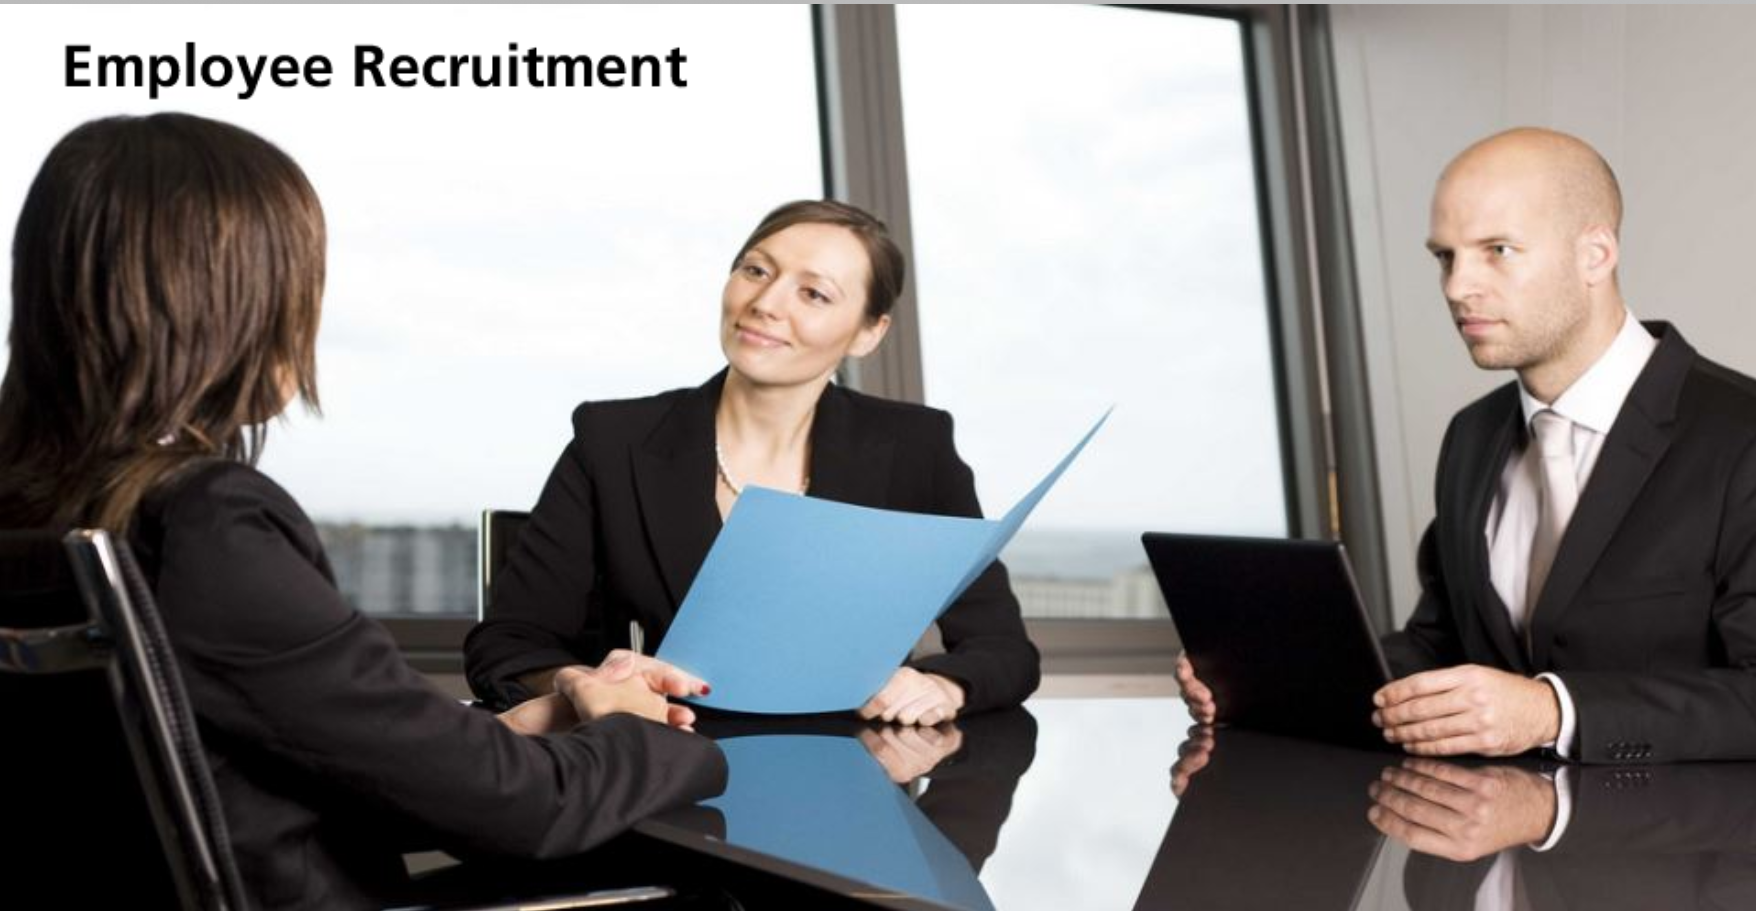 Employee Recruitment